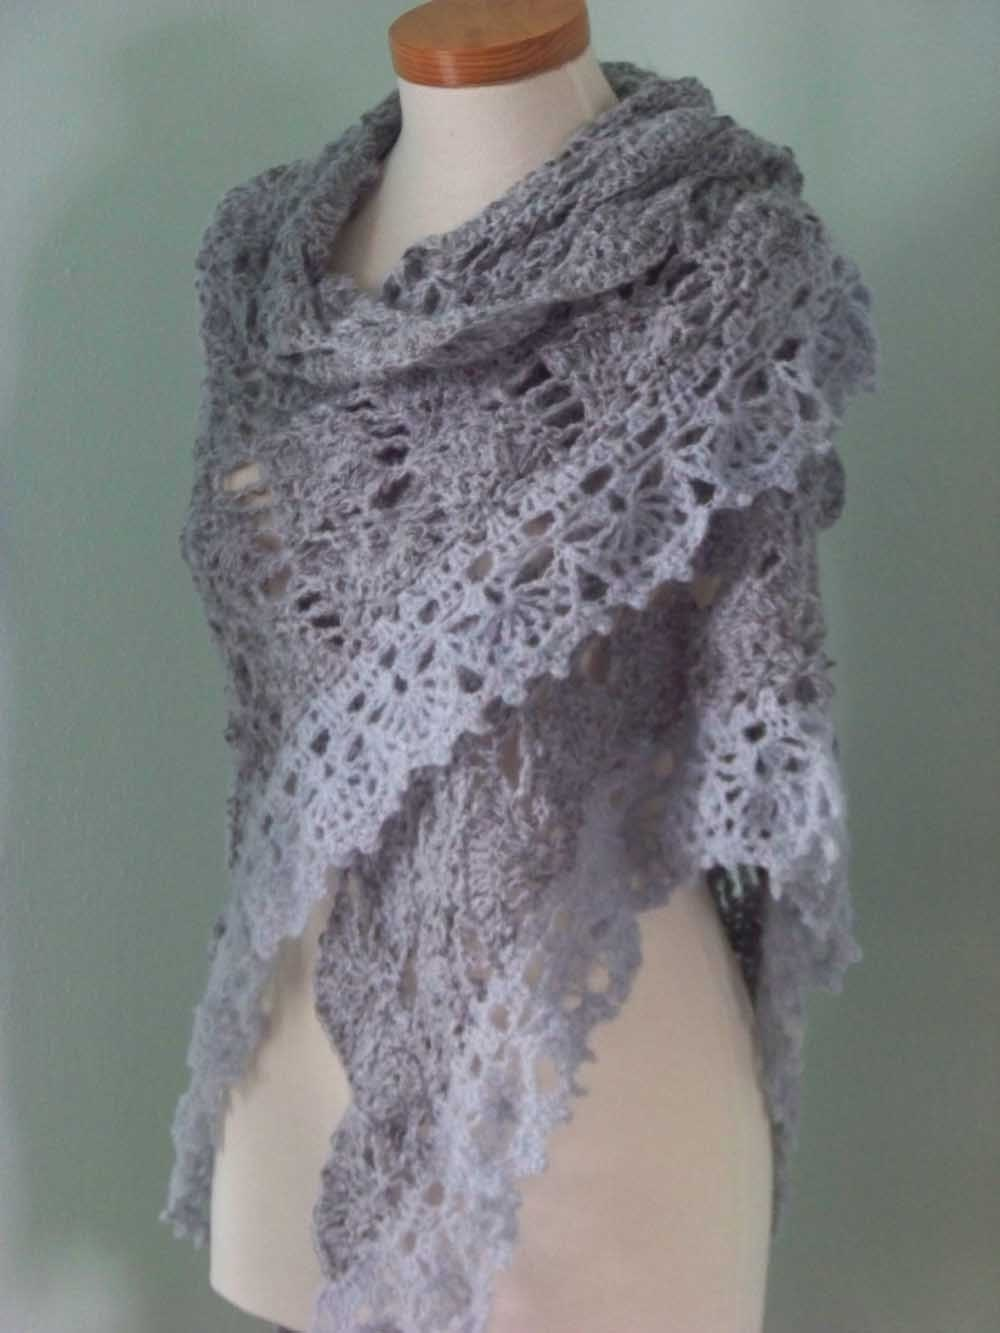 CROCHET FREE LACY PATTERN SHAWL - Crochet Club